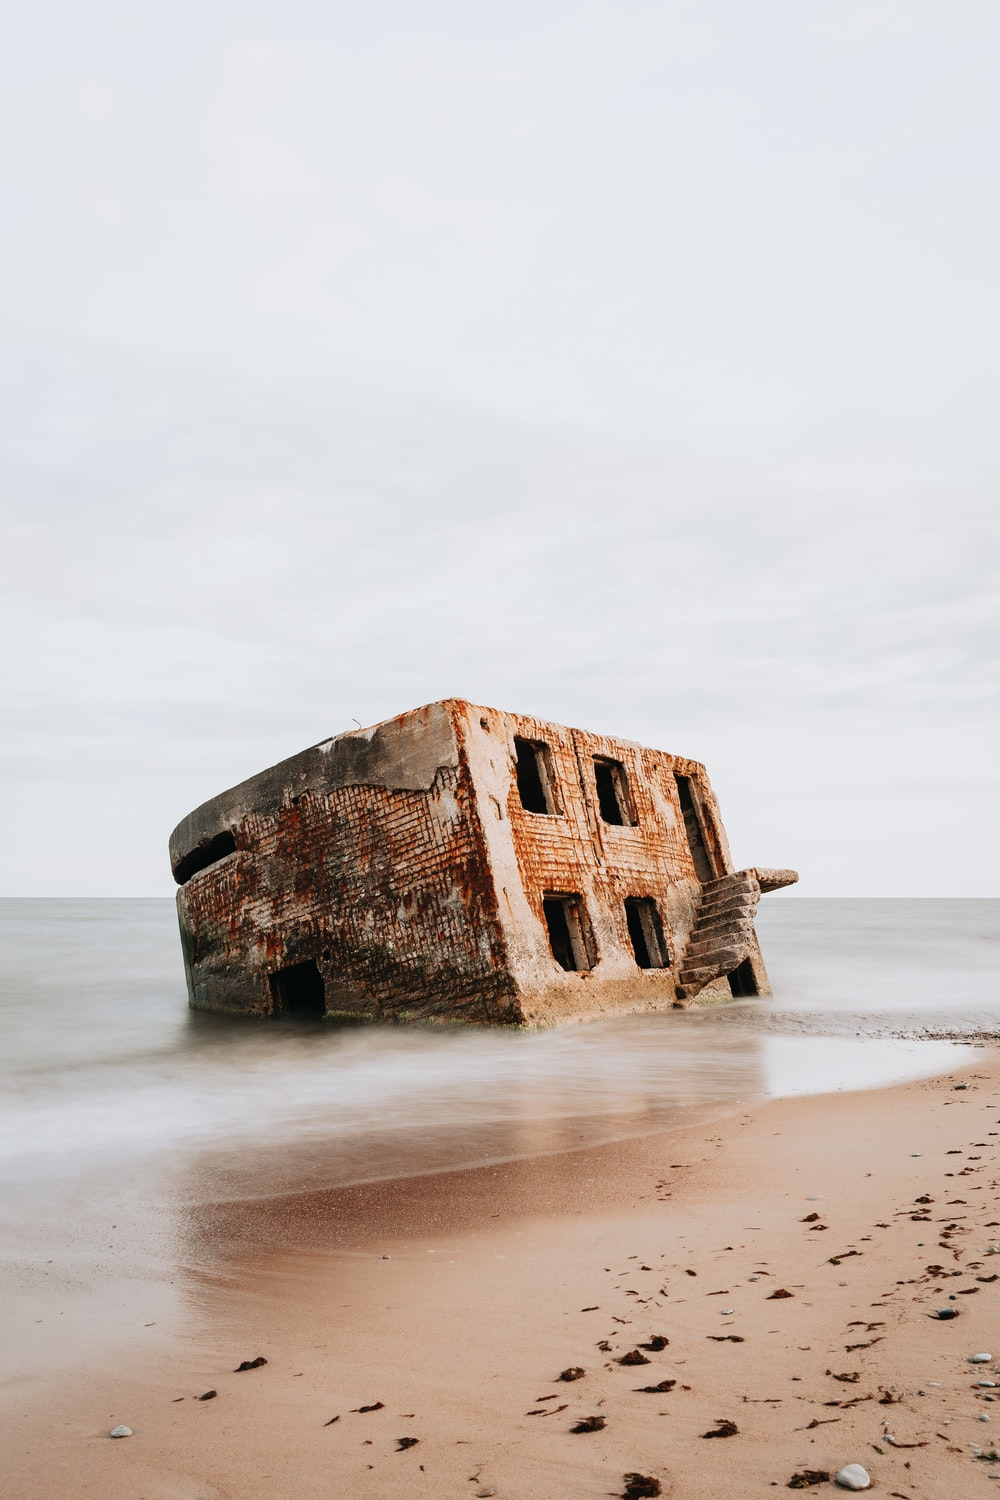 brown concrete building on white sand beach during daytime